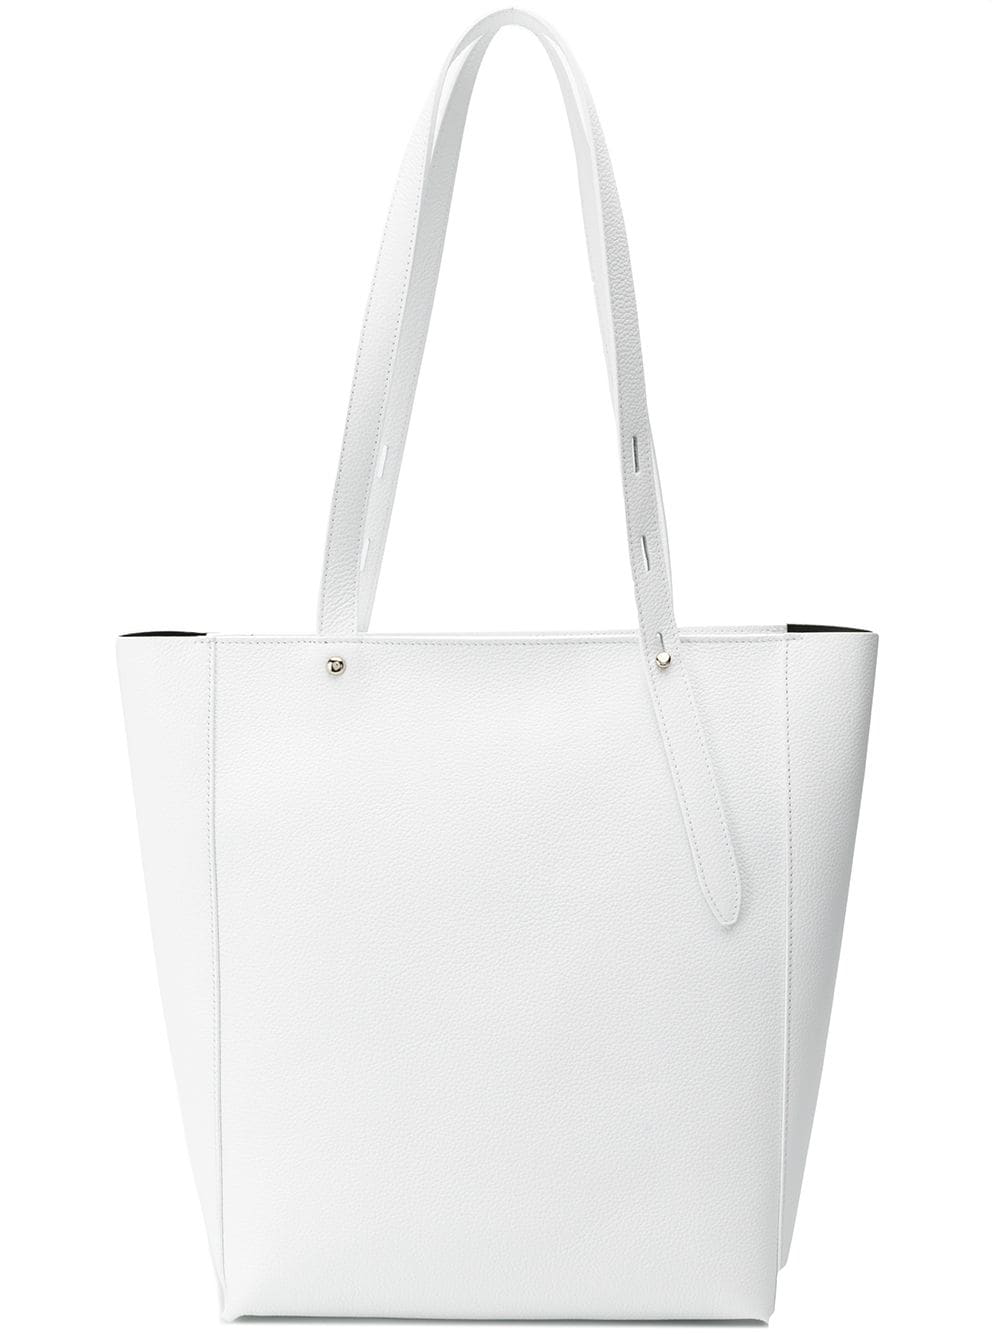 99a1b2821 Rebecca Minkoff Stella North South Tote - White | ModeSens